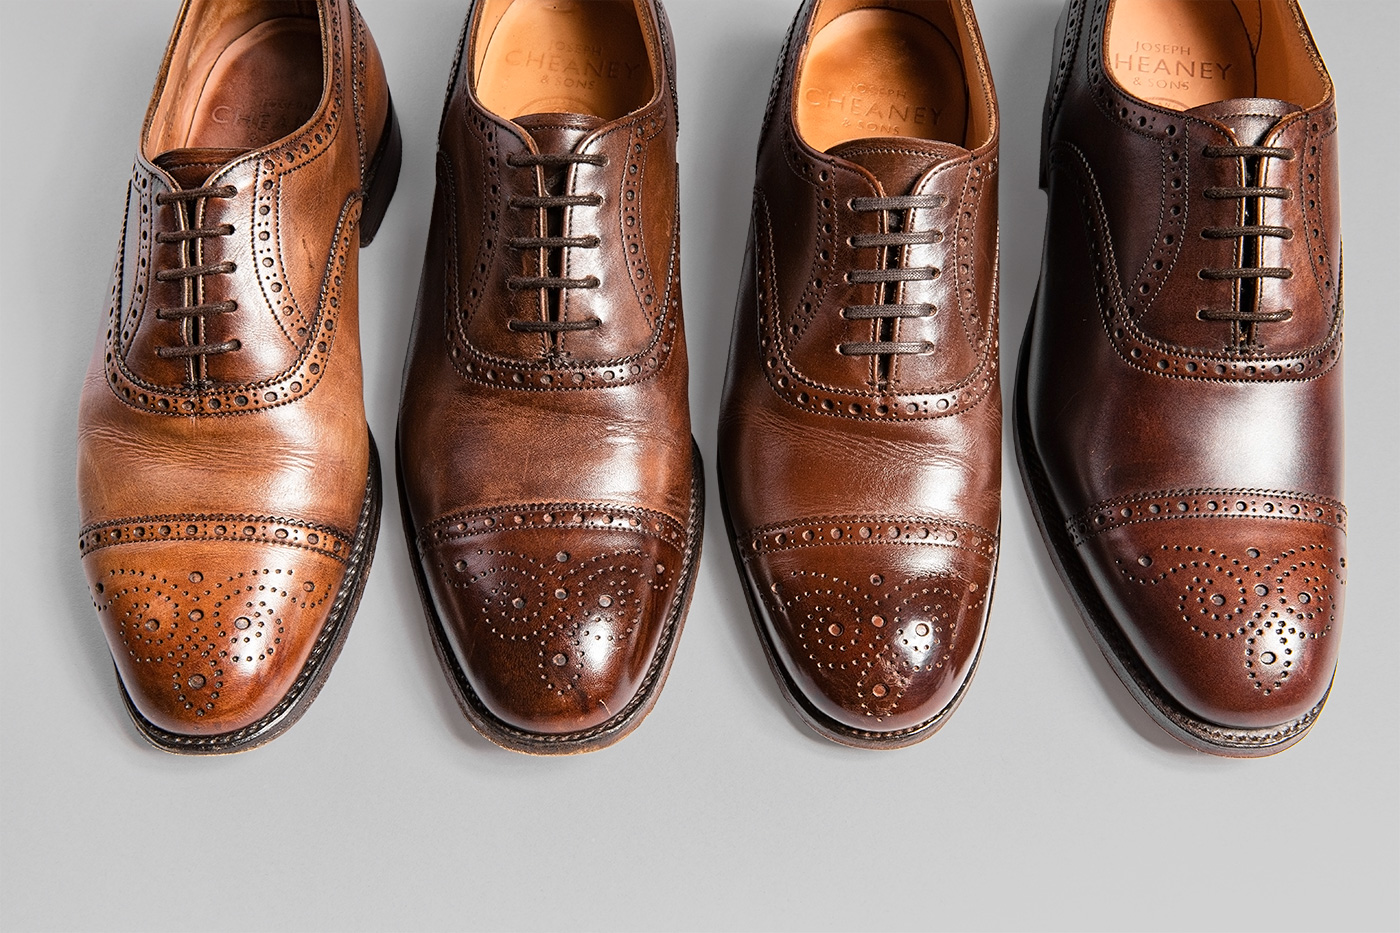 AGING MUSEUM of JOSEPH CHEANEY BROWN 経年変化まとめ